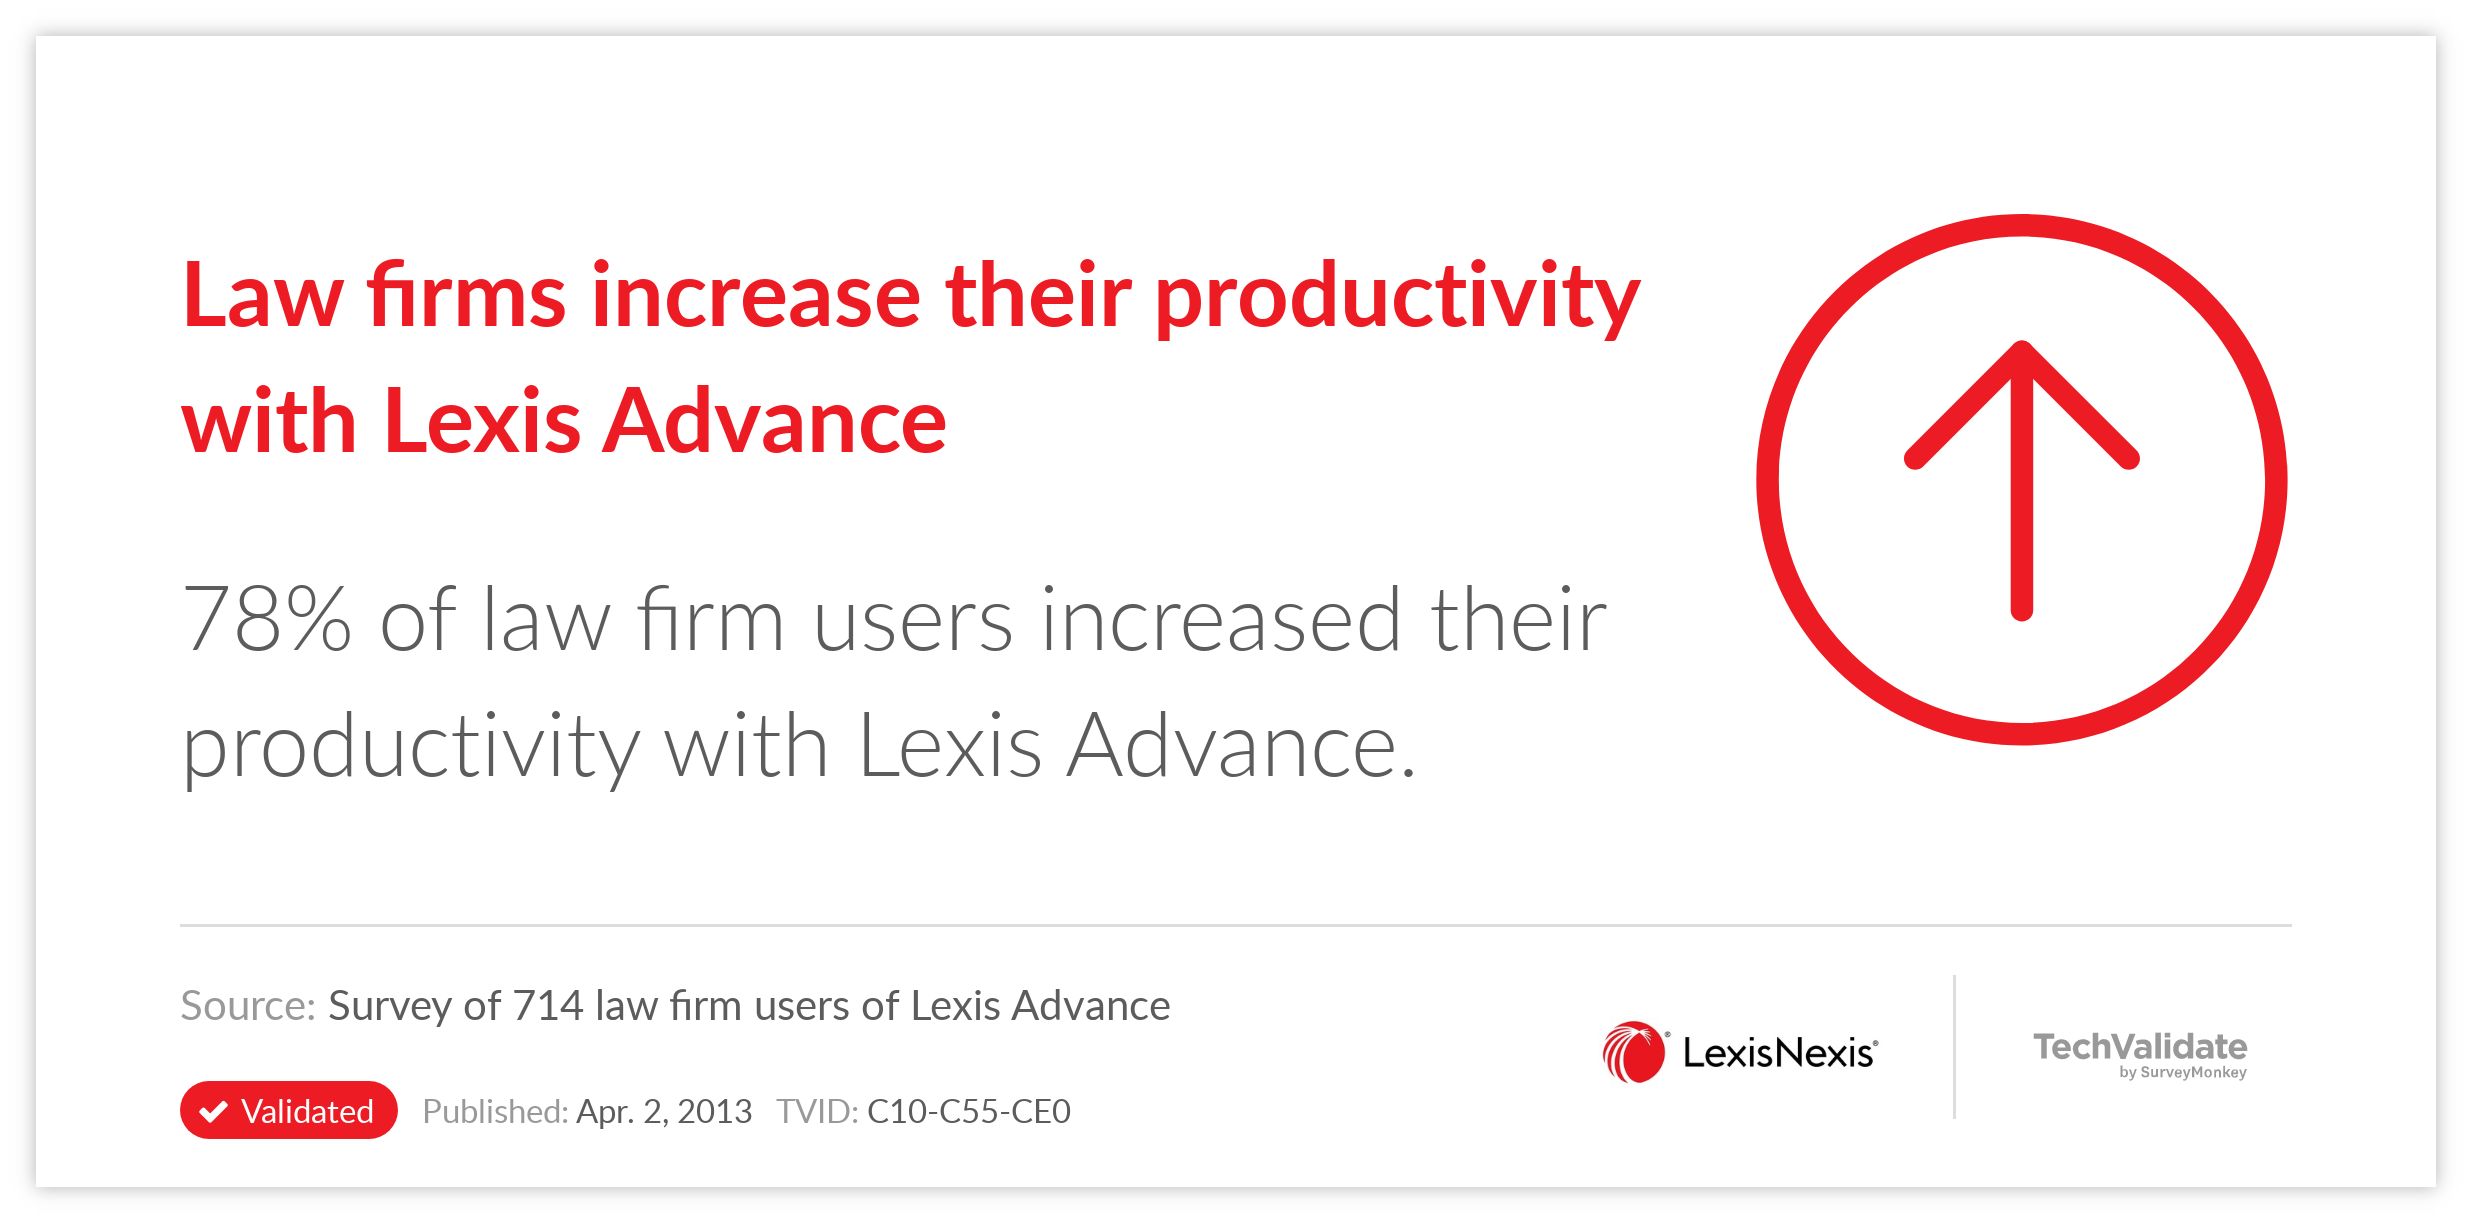 Law firms increase their productivity with Lexis Advance